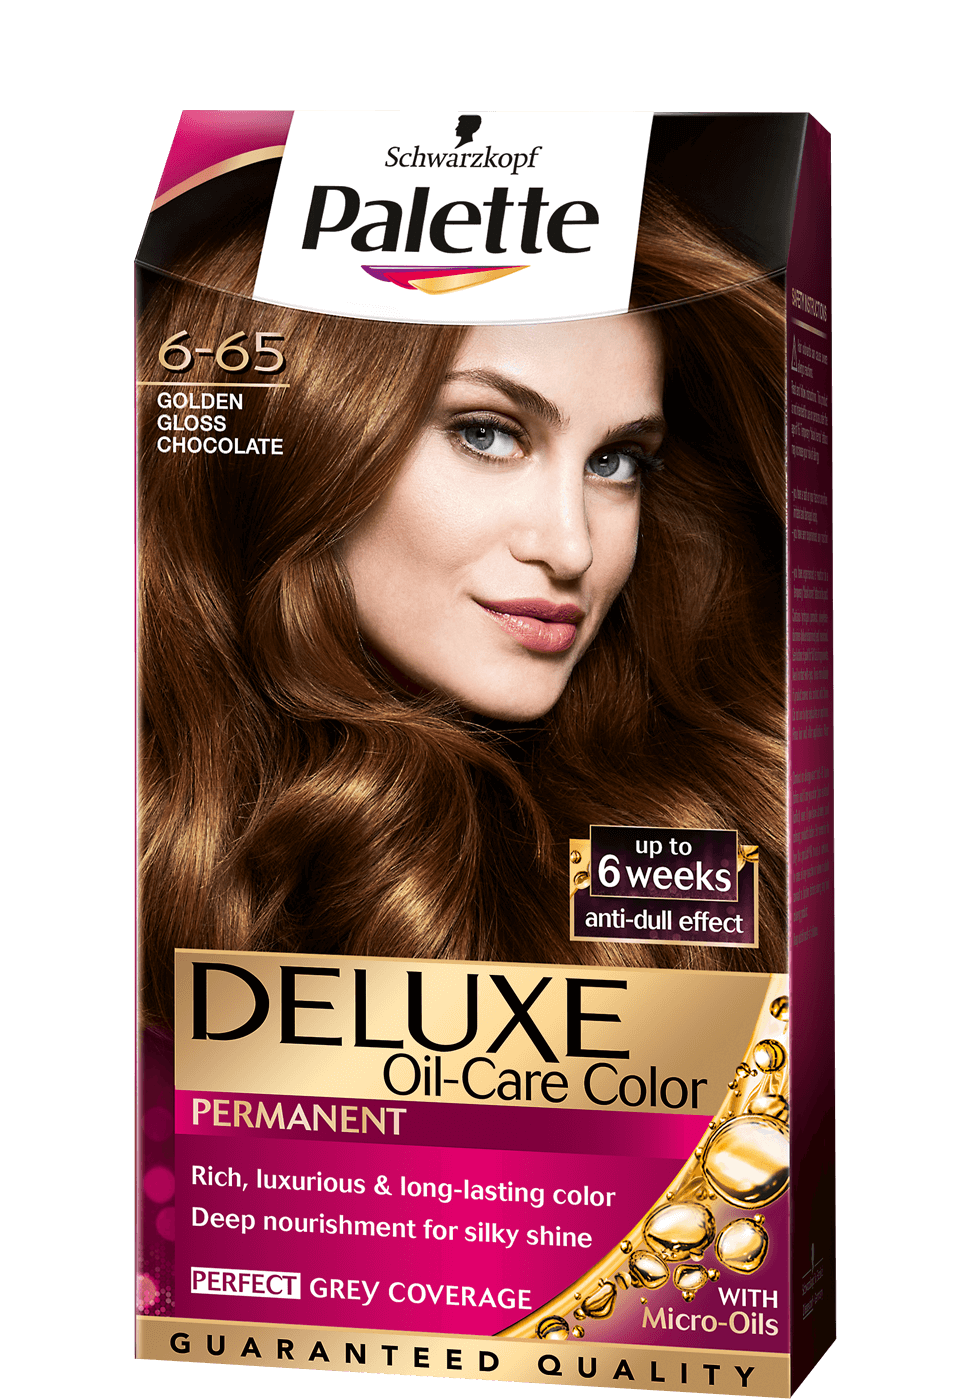 palette_com_deluxe_baseline_6-65_golden_gloss_chocolate_970x1400